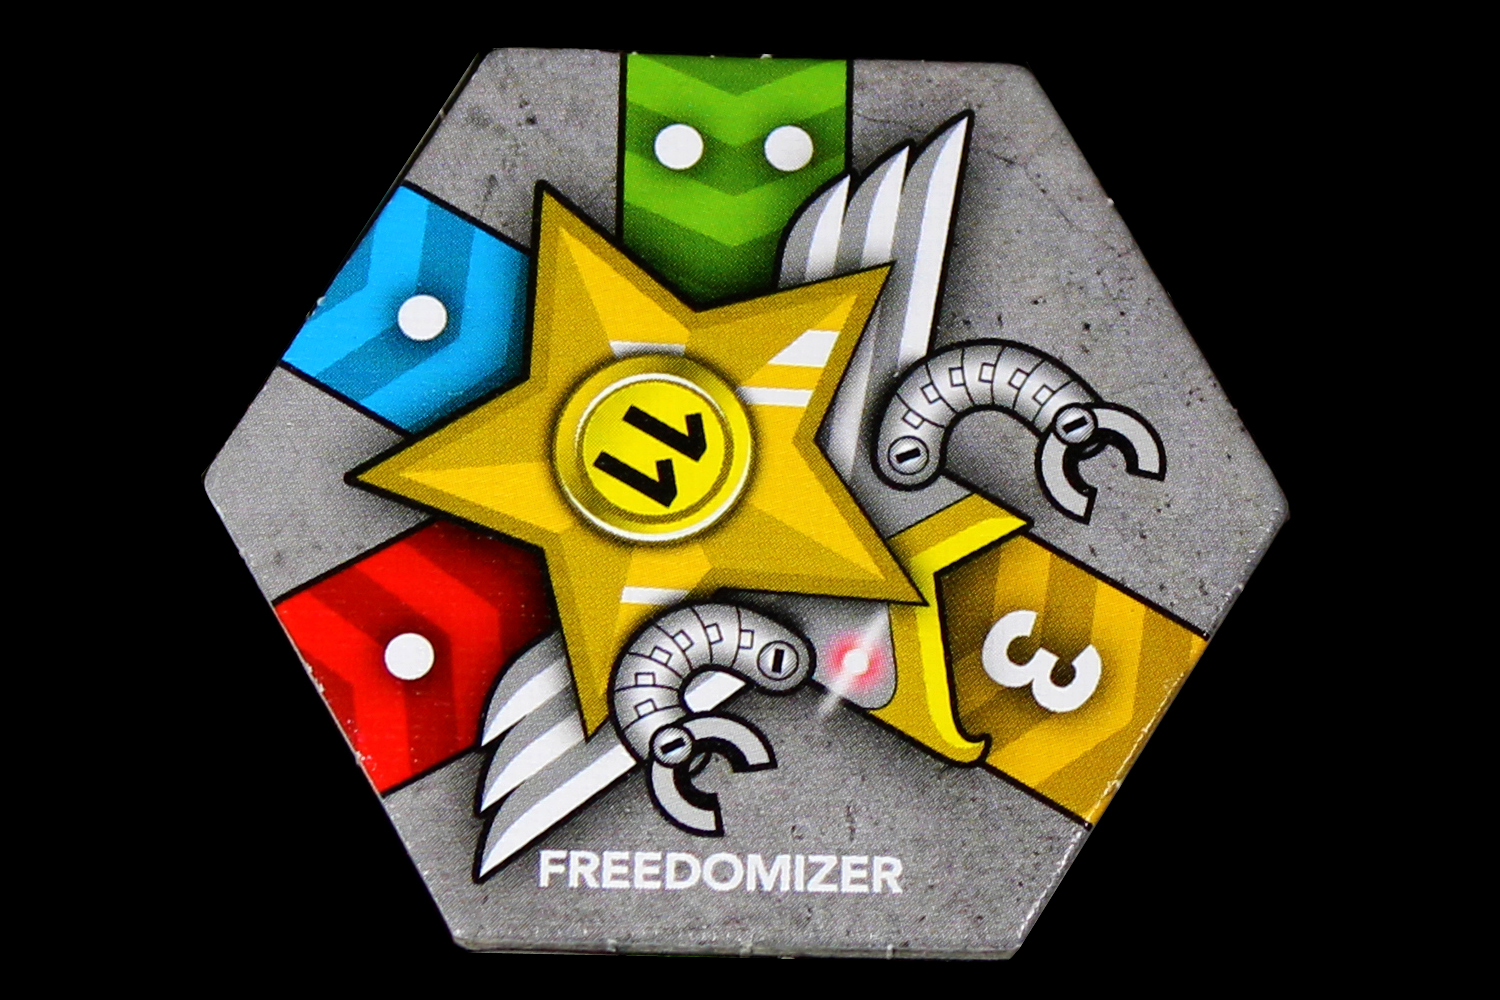 Of course I would pick the Freedomizer.